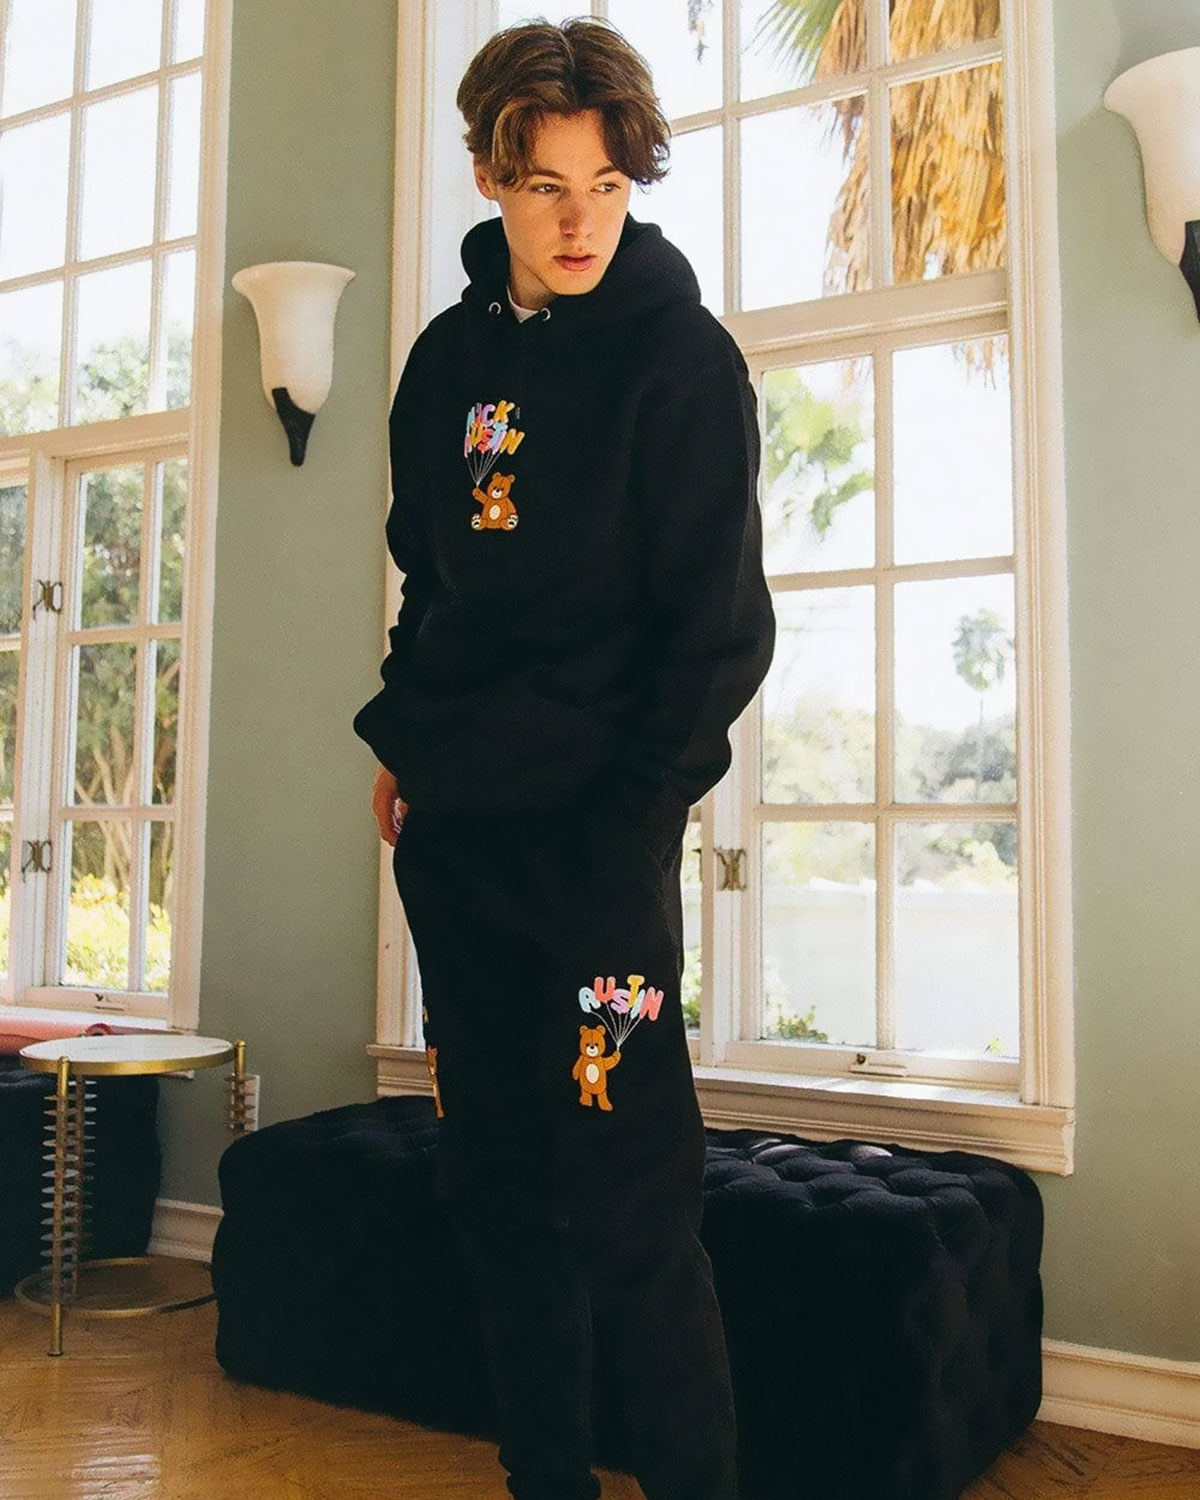 NICK AUSTIN TEDDY BEAR BLACK JOGGERS Sports Korean Loose Pants Ins Tide  Streetwear Men And Women Casual Trousers Kpop